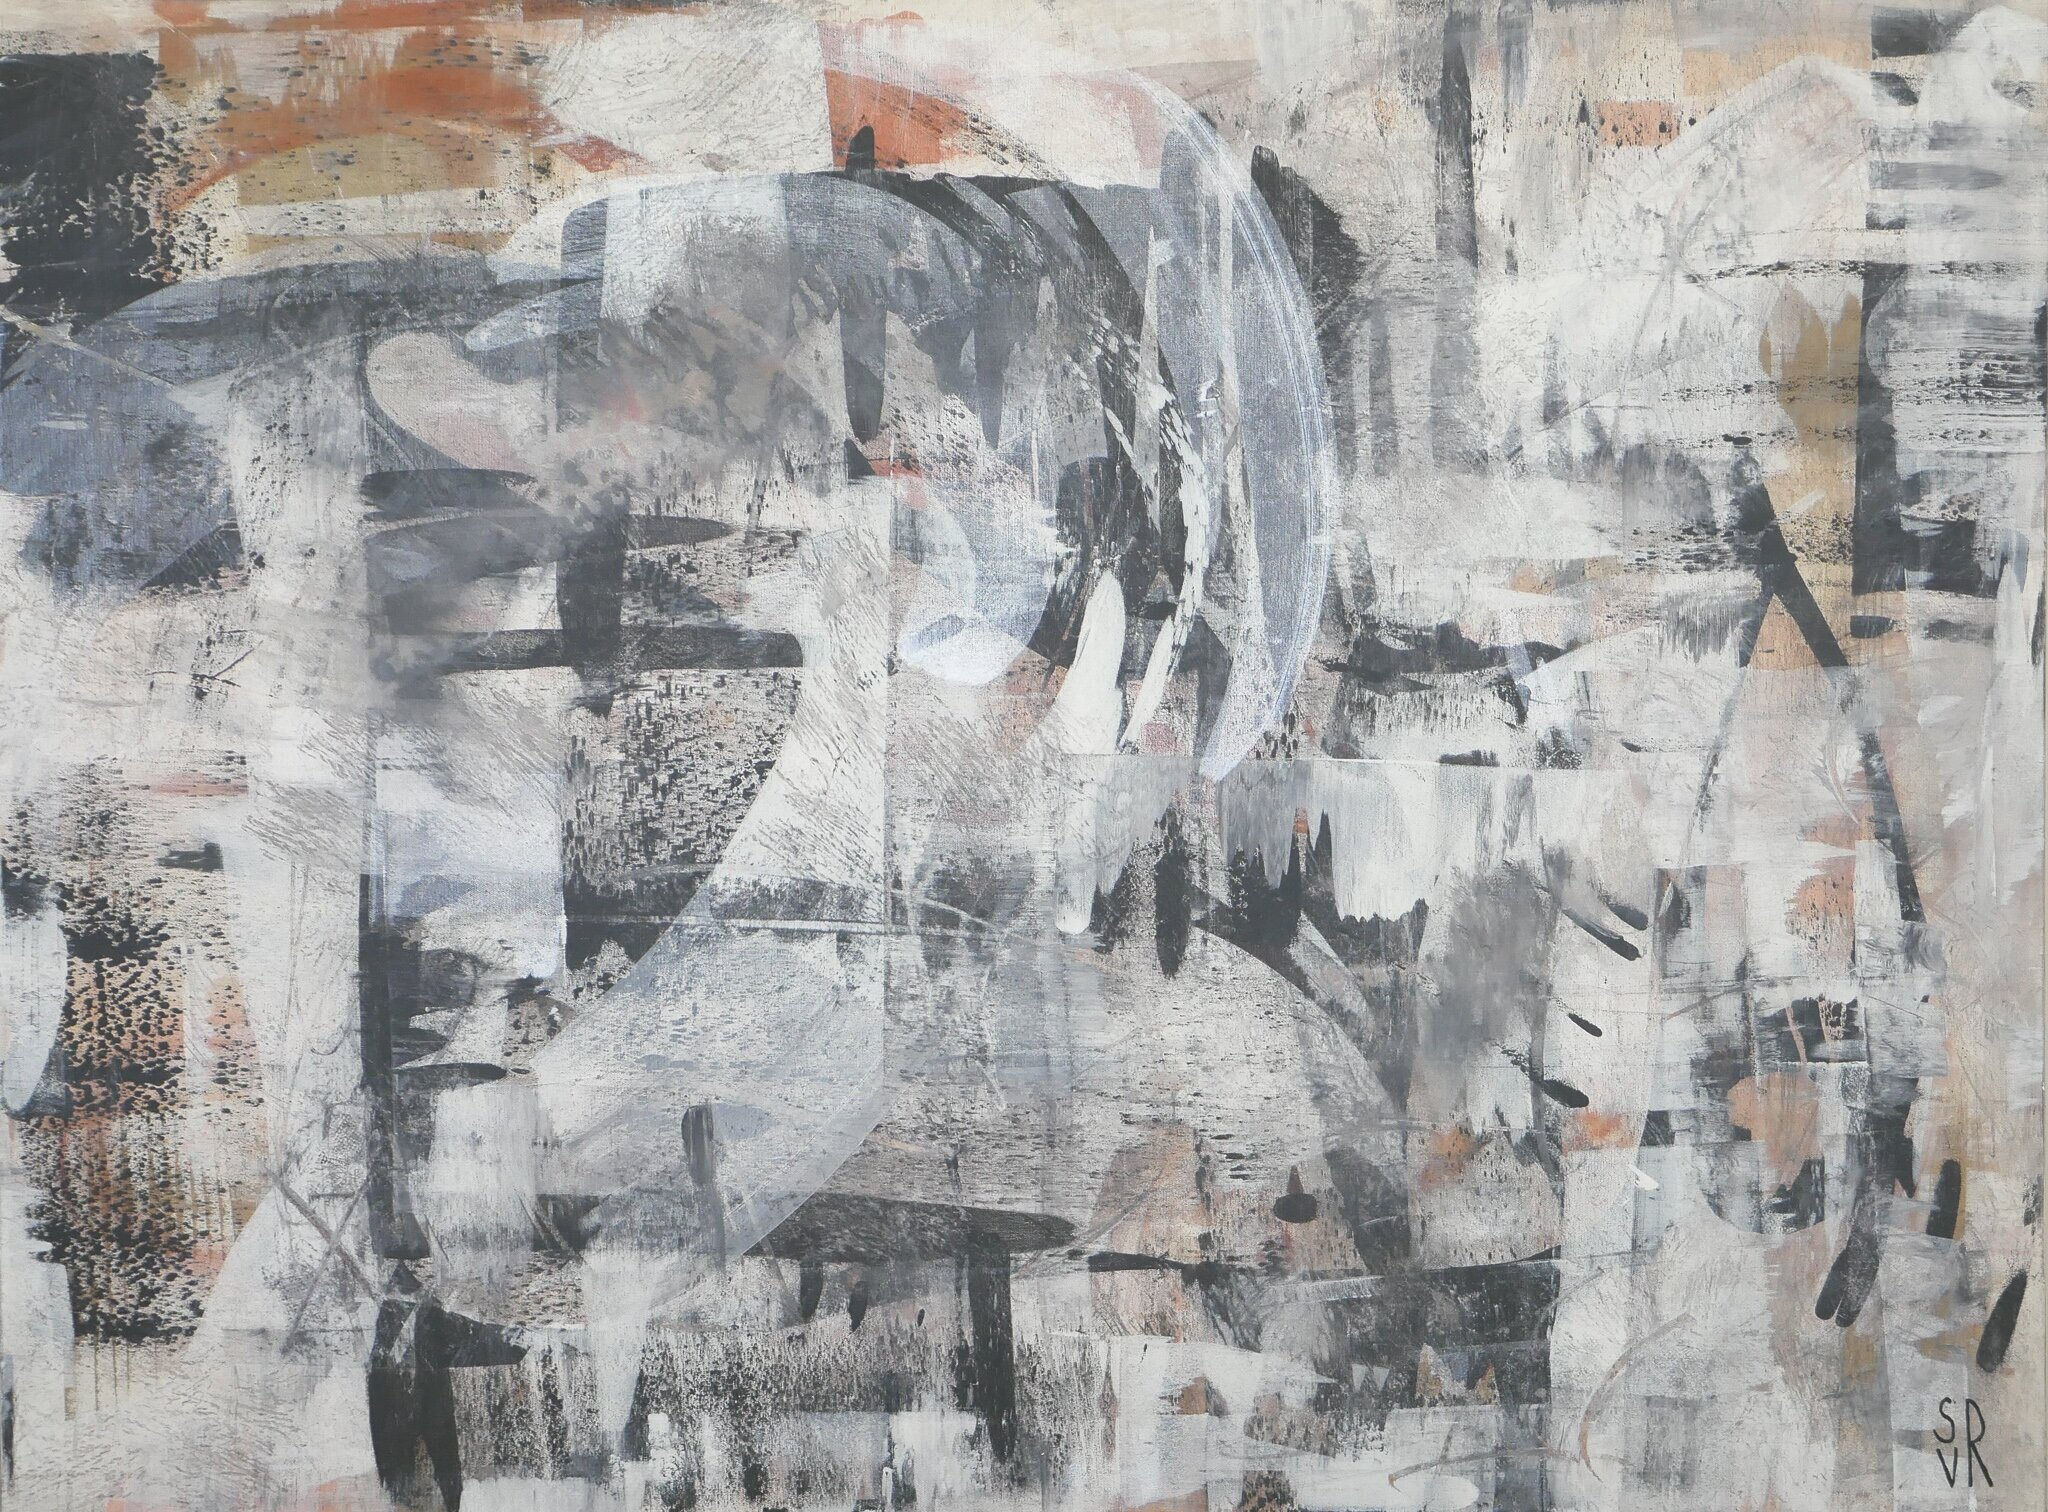 Learn how to use Abstract Art for self-relfection - Download free guide